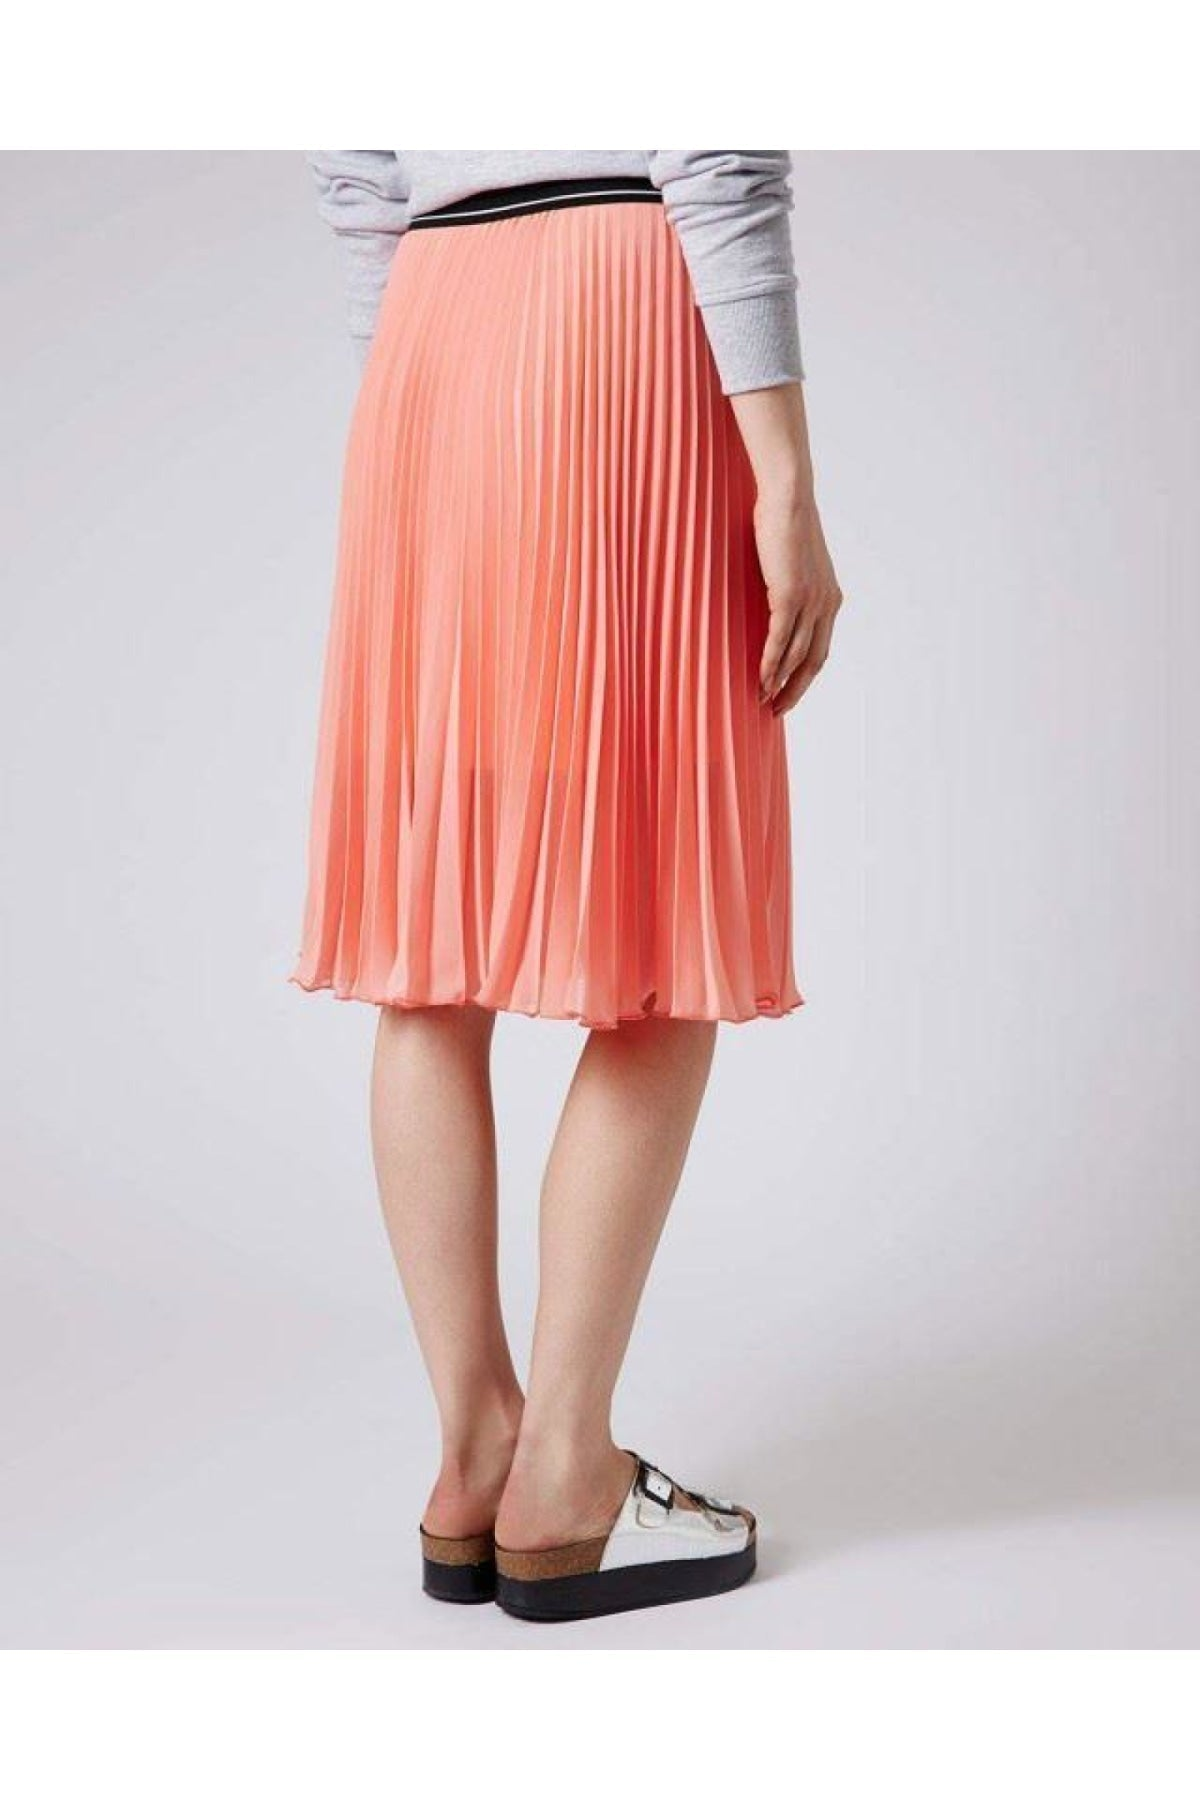 Topshop Ex Topshop Pleated Floaty Summer Skirt | Secret Label